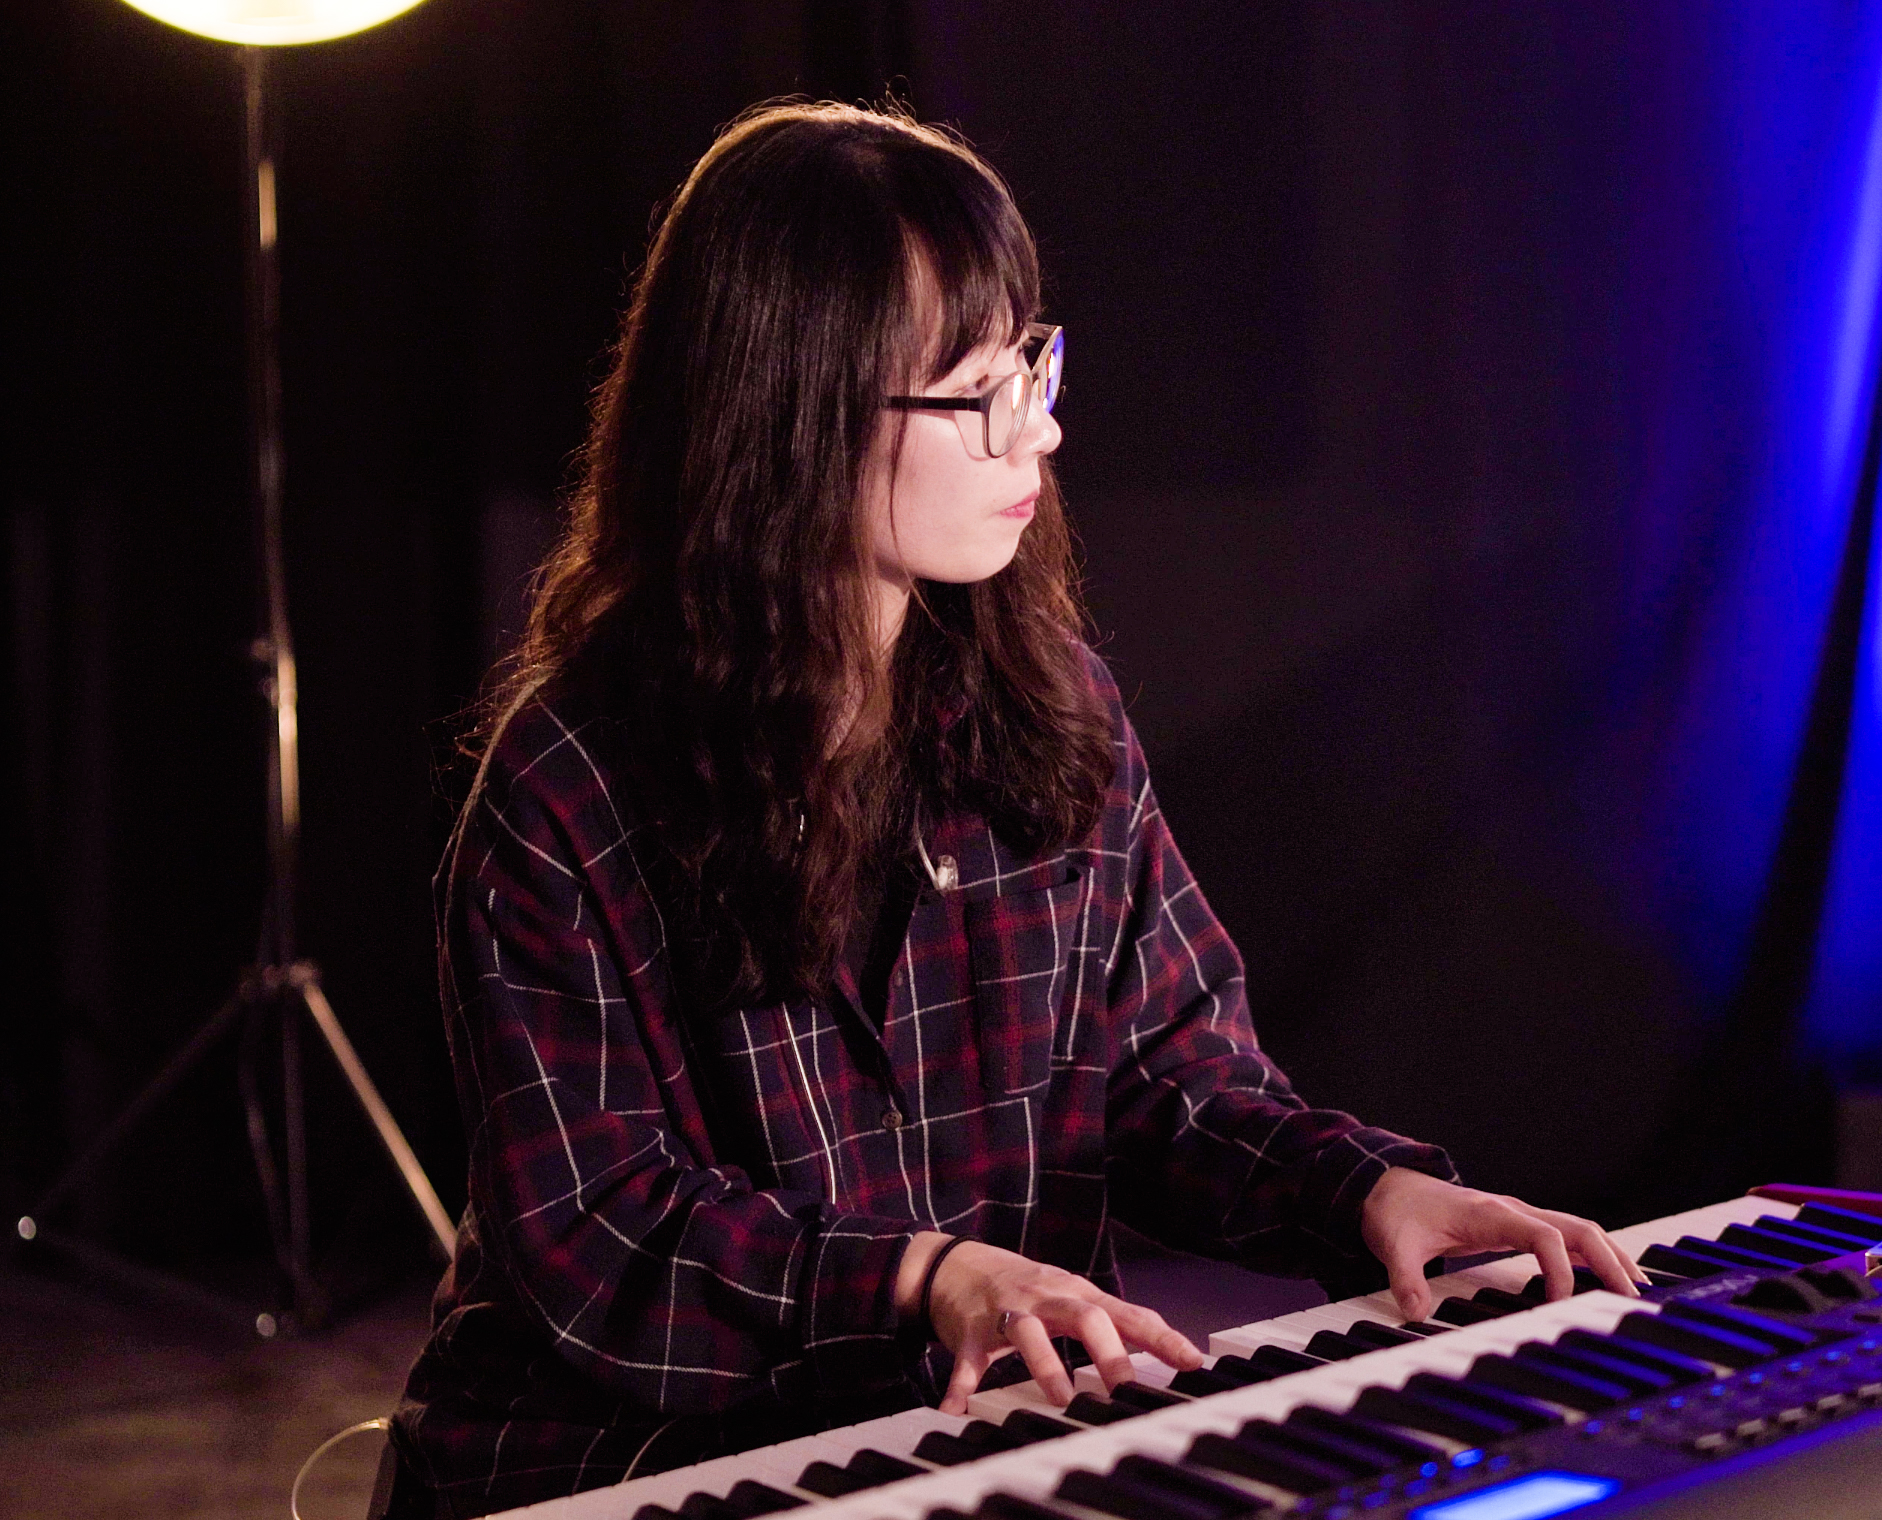 YWAMer playing the piano during worship